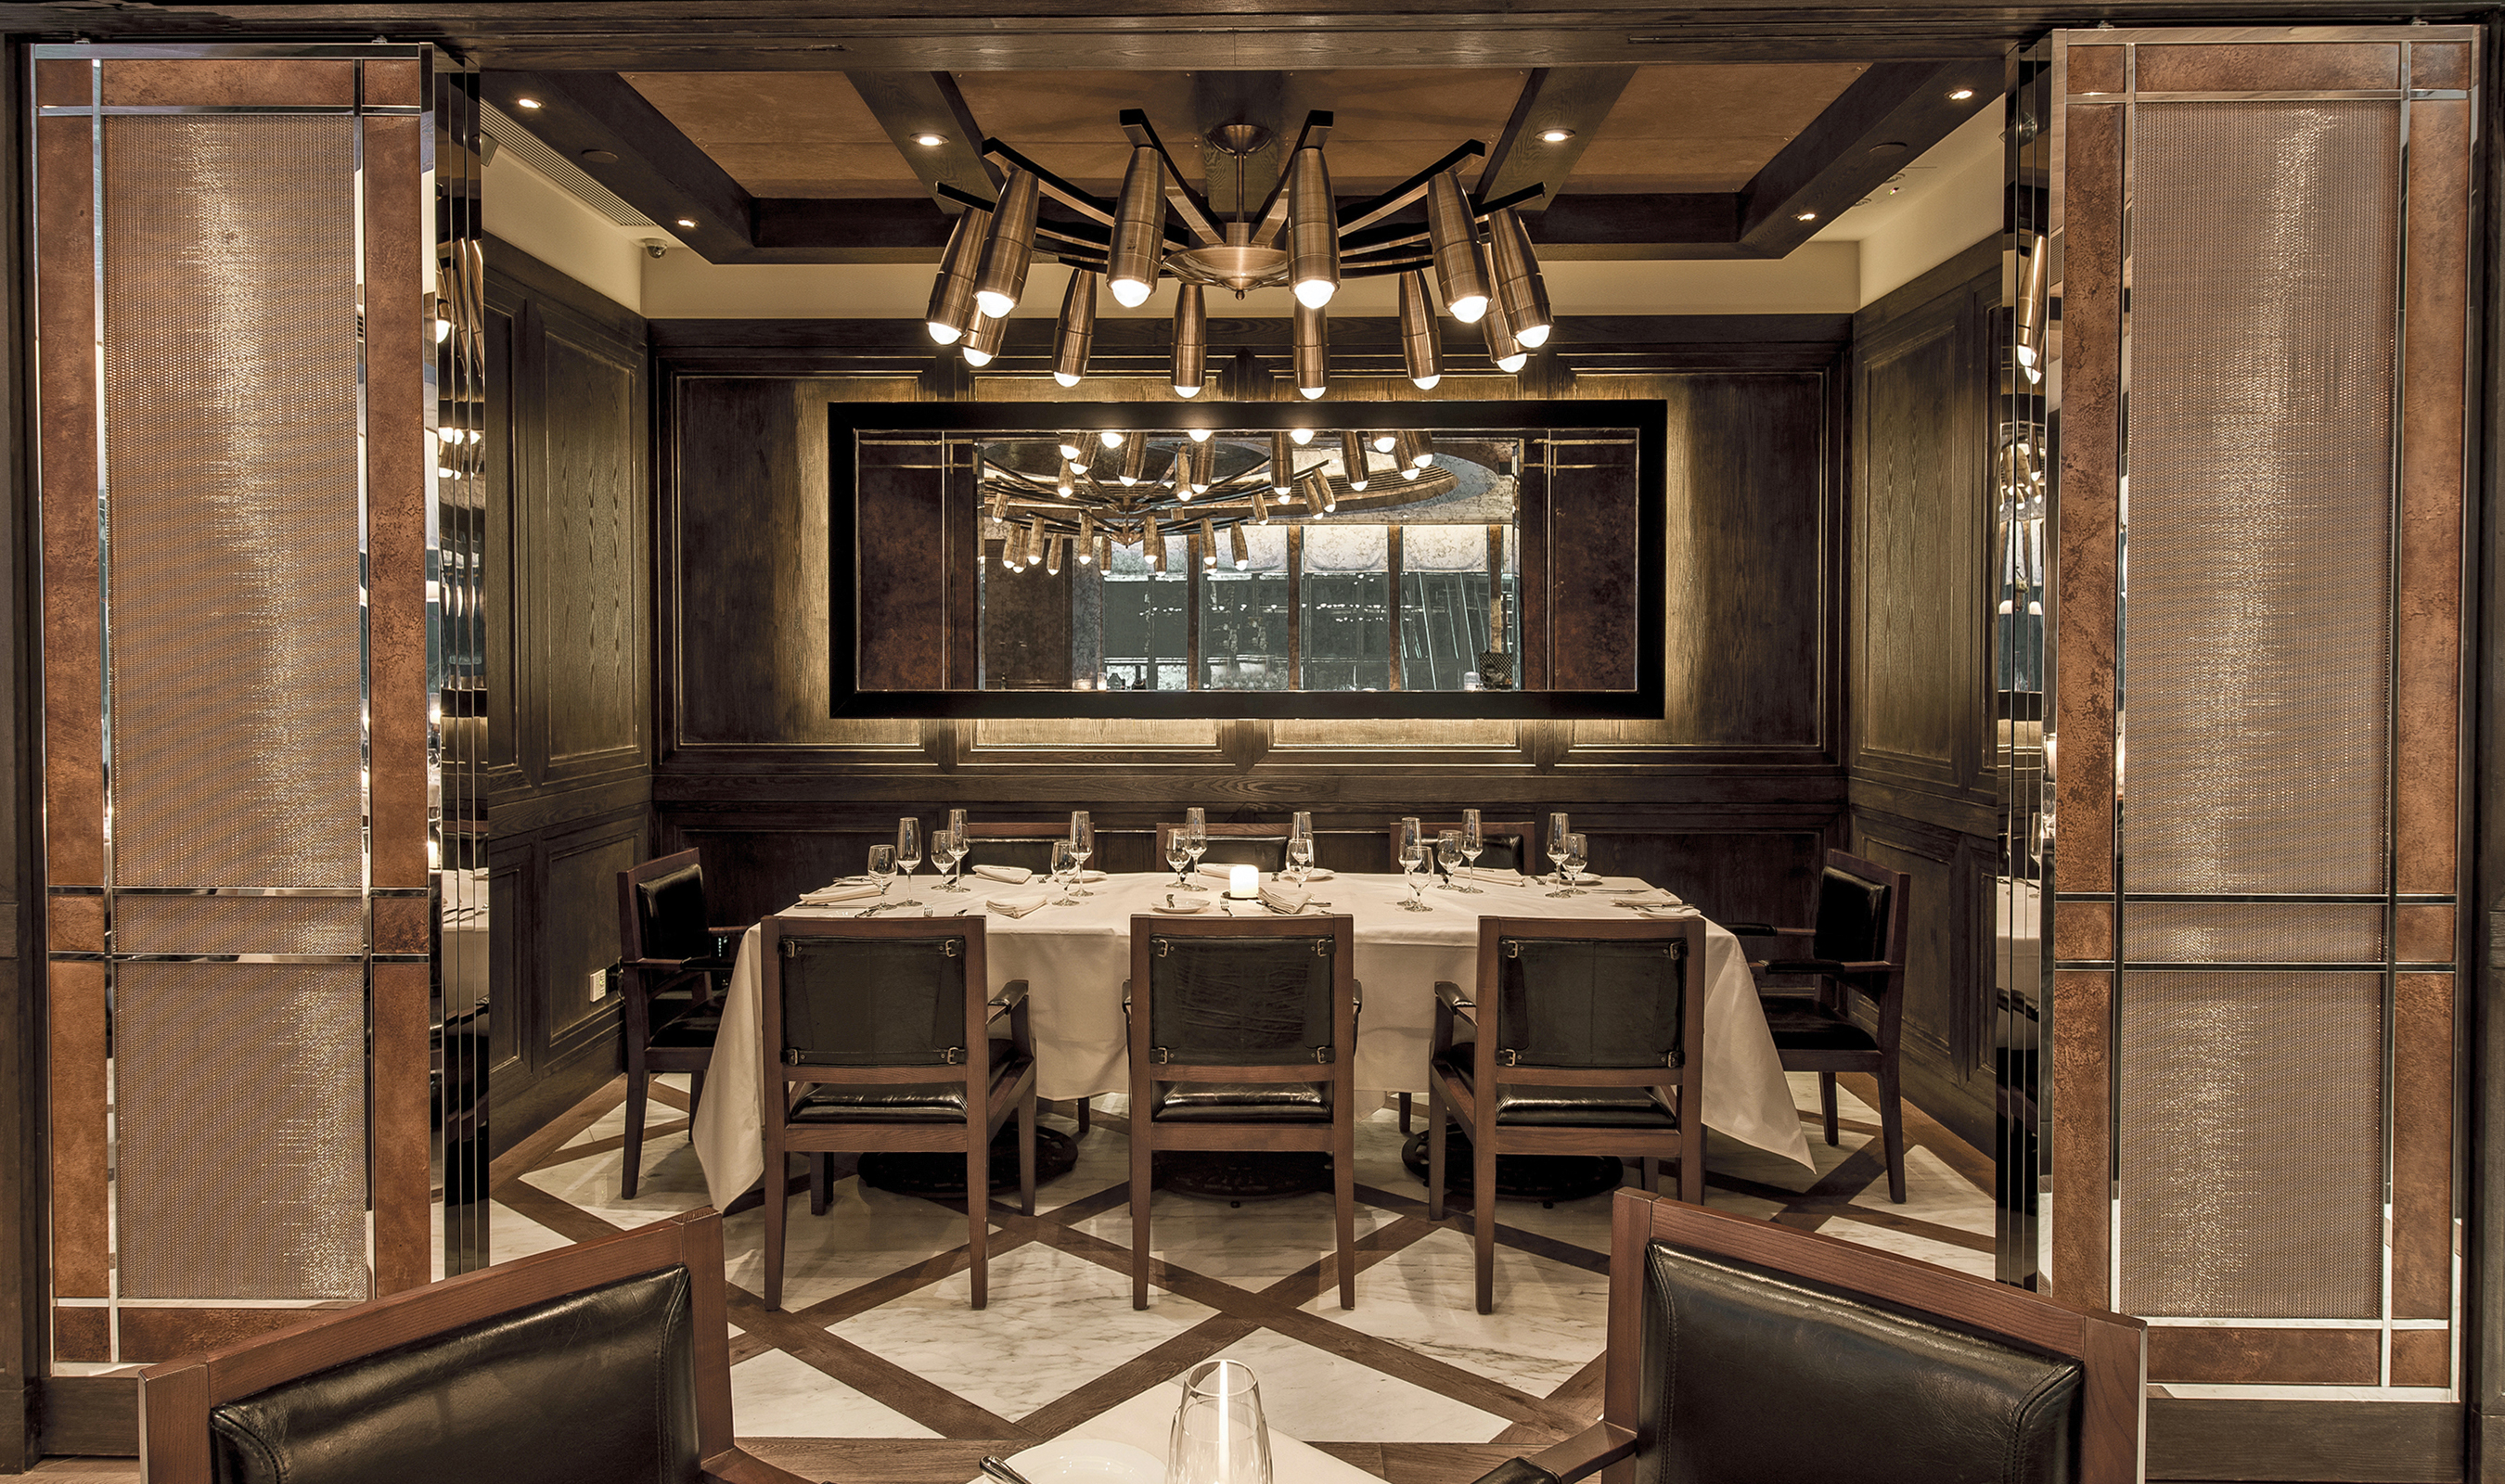 At Carnevino, three types of Banker Wire mesh complete a vintage racing-inspired aesthetic.